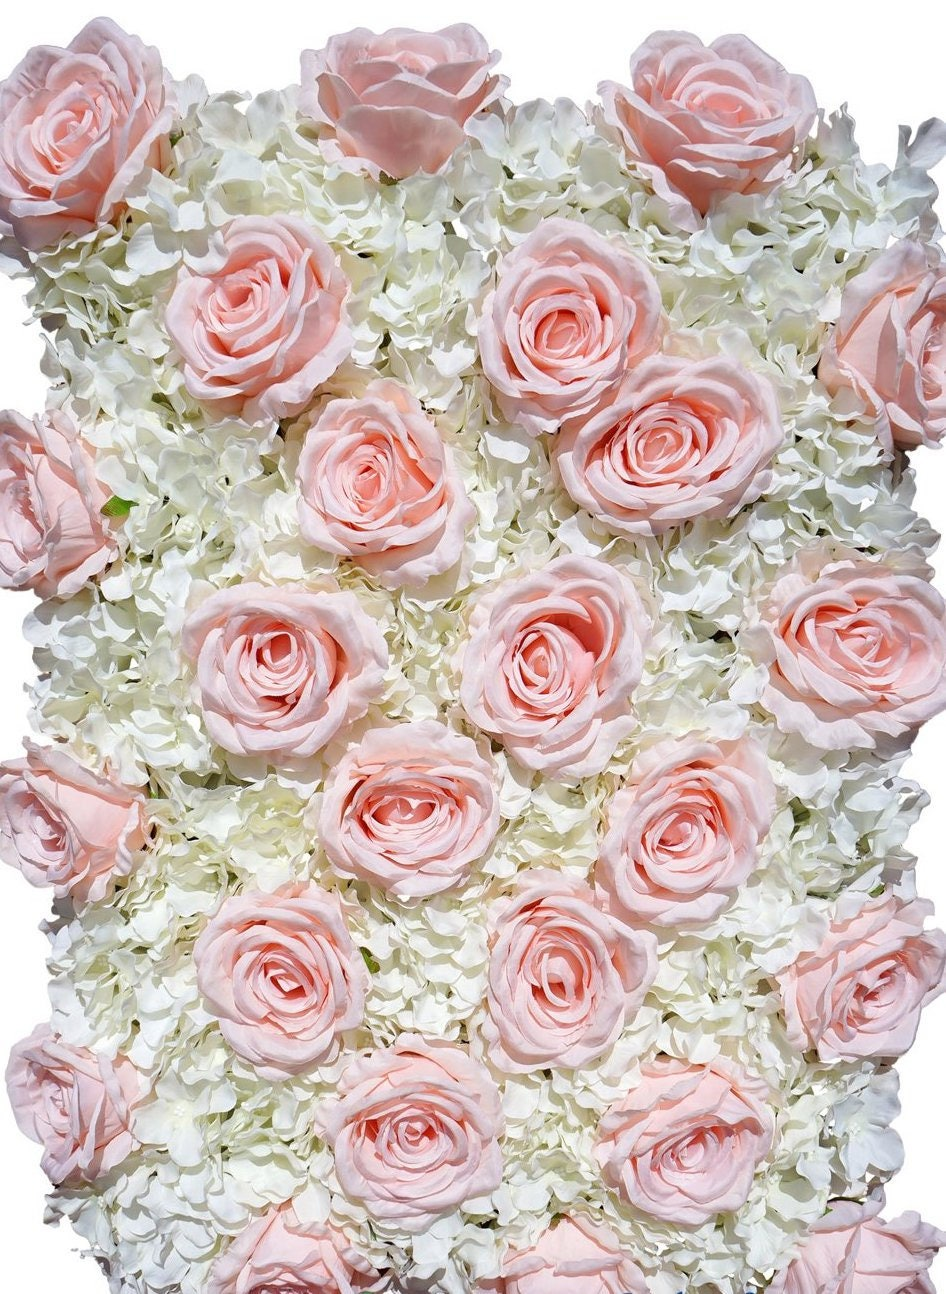 Blush White Flower Wall Pink Roses Hydrangeas Artificial Etsy